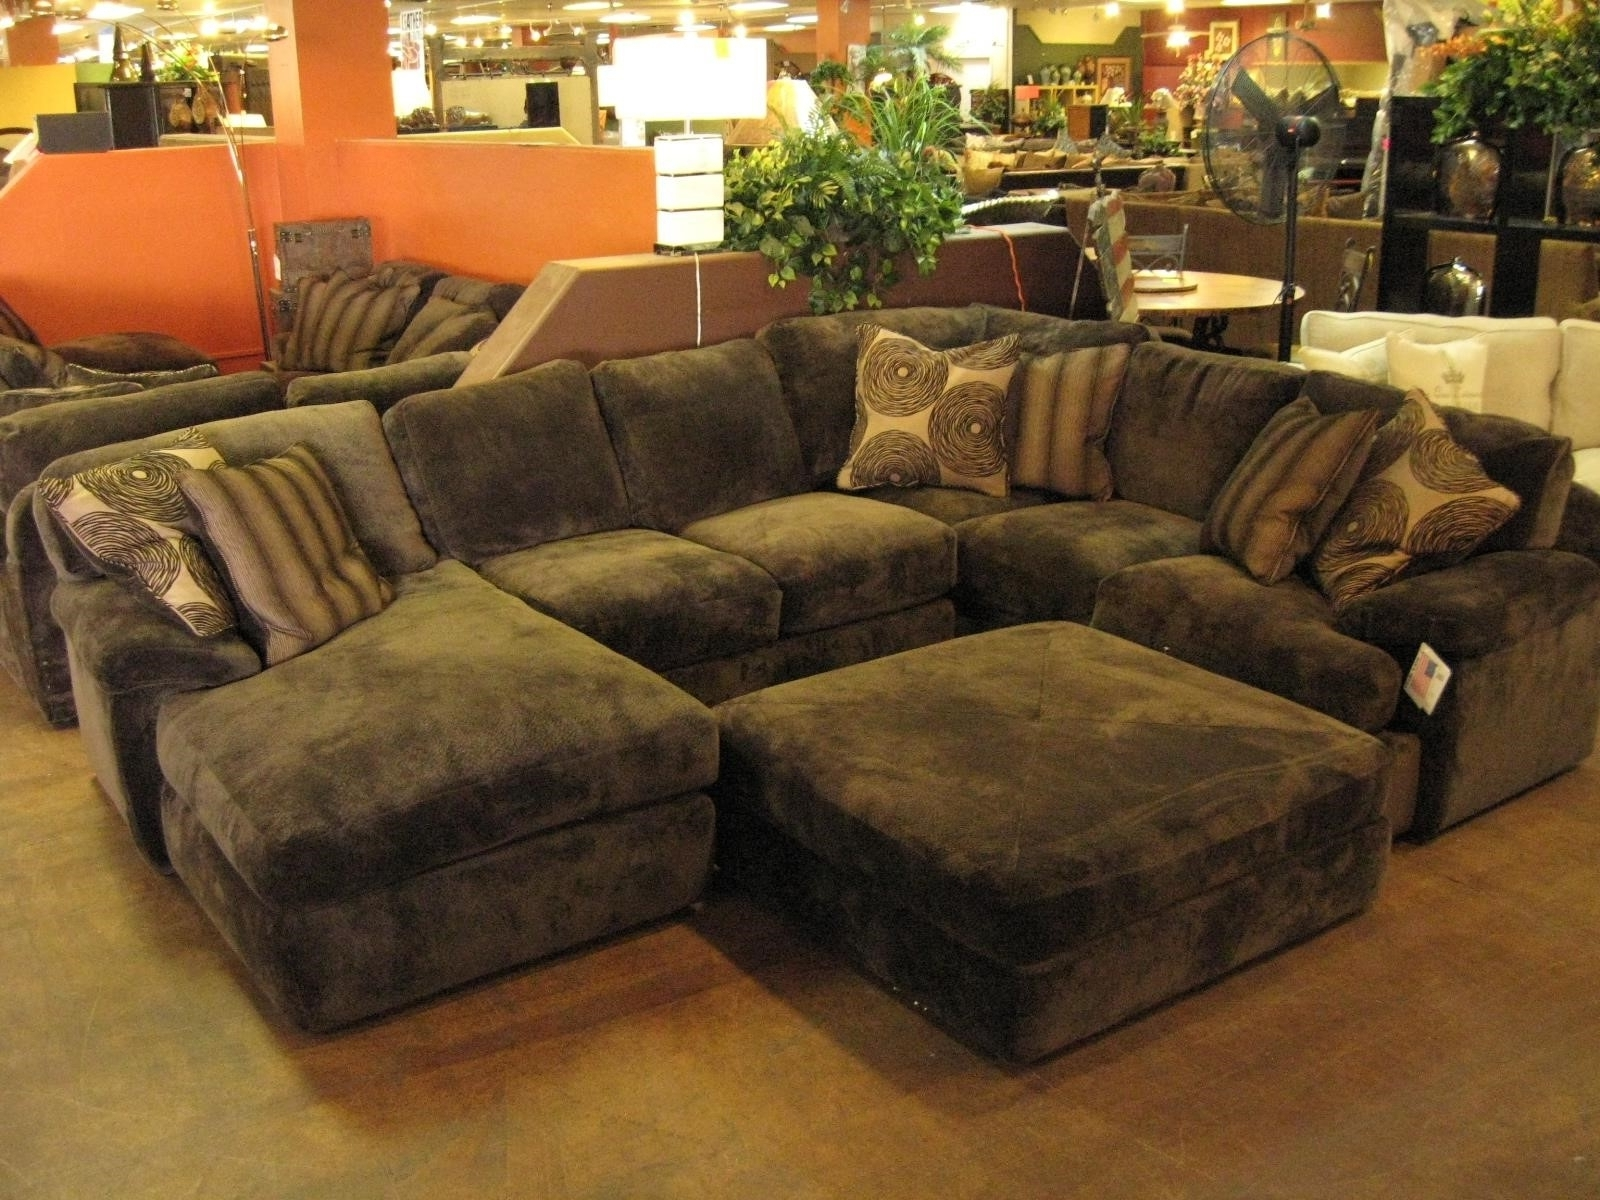 Widely Used Deep Sectional Sofa With Chaise – Visionexchange (View 15 of 15)